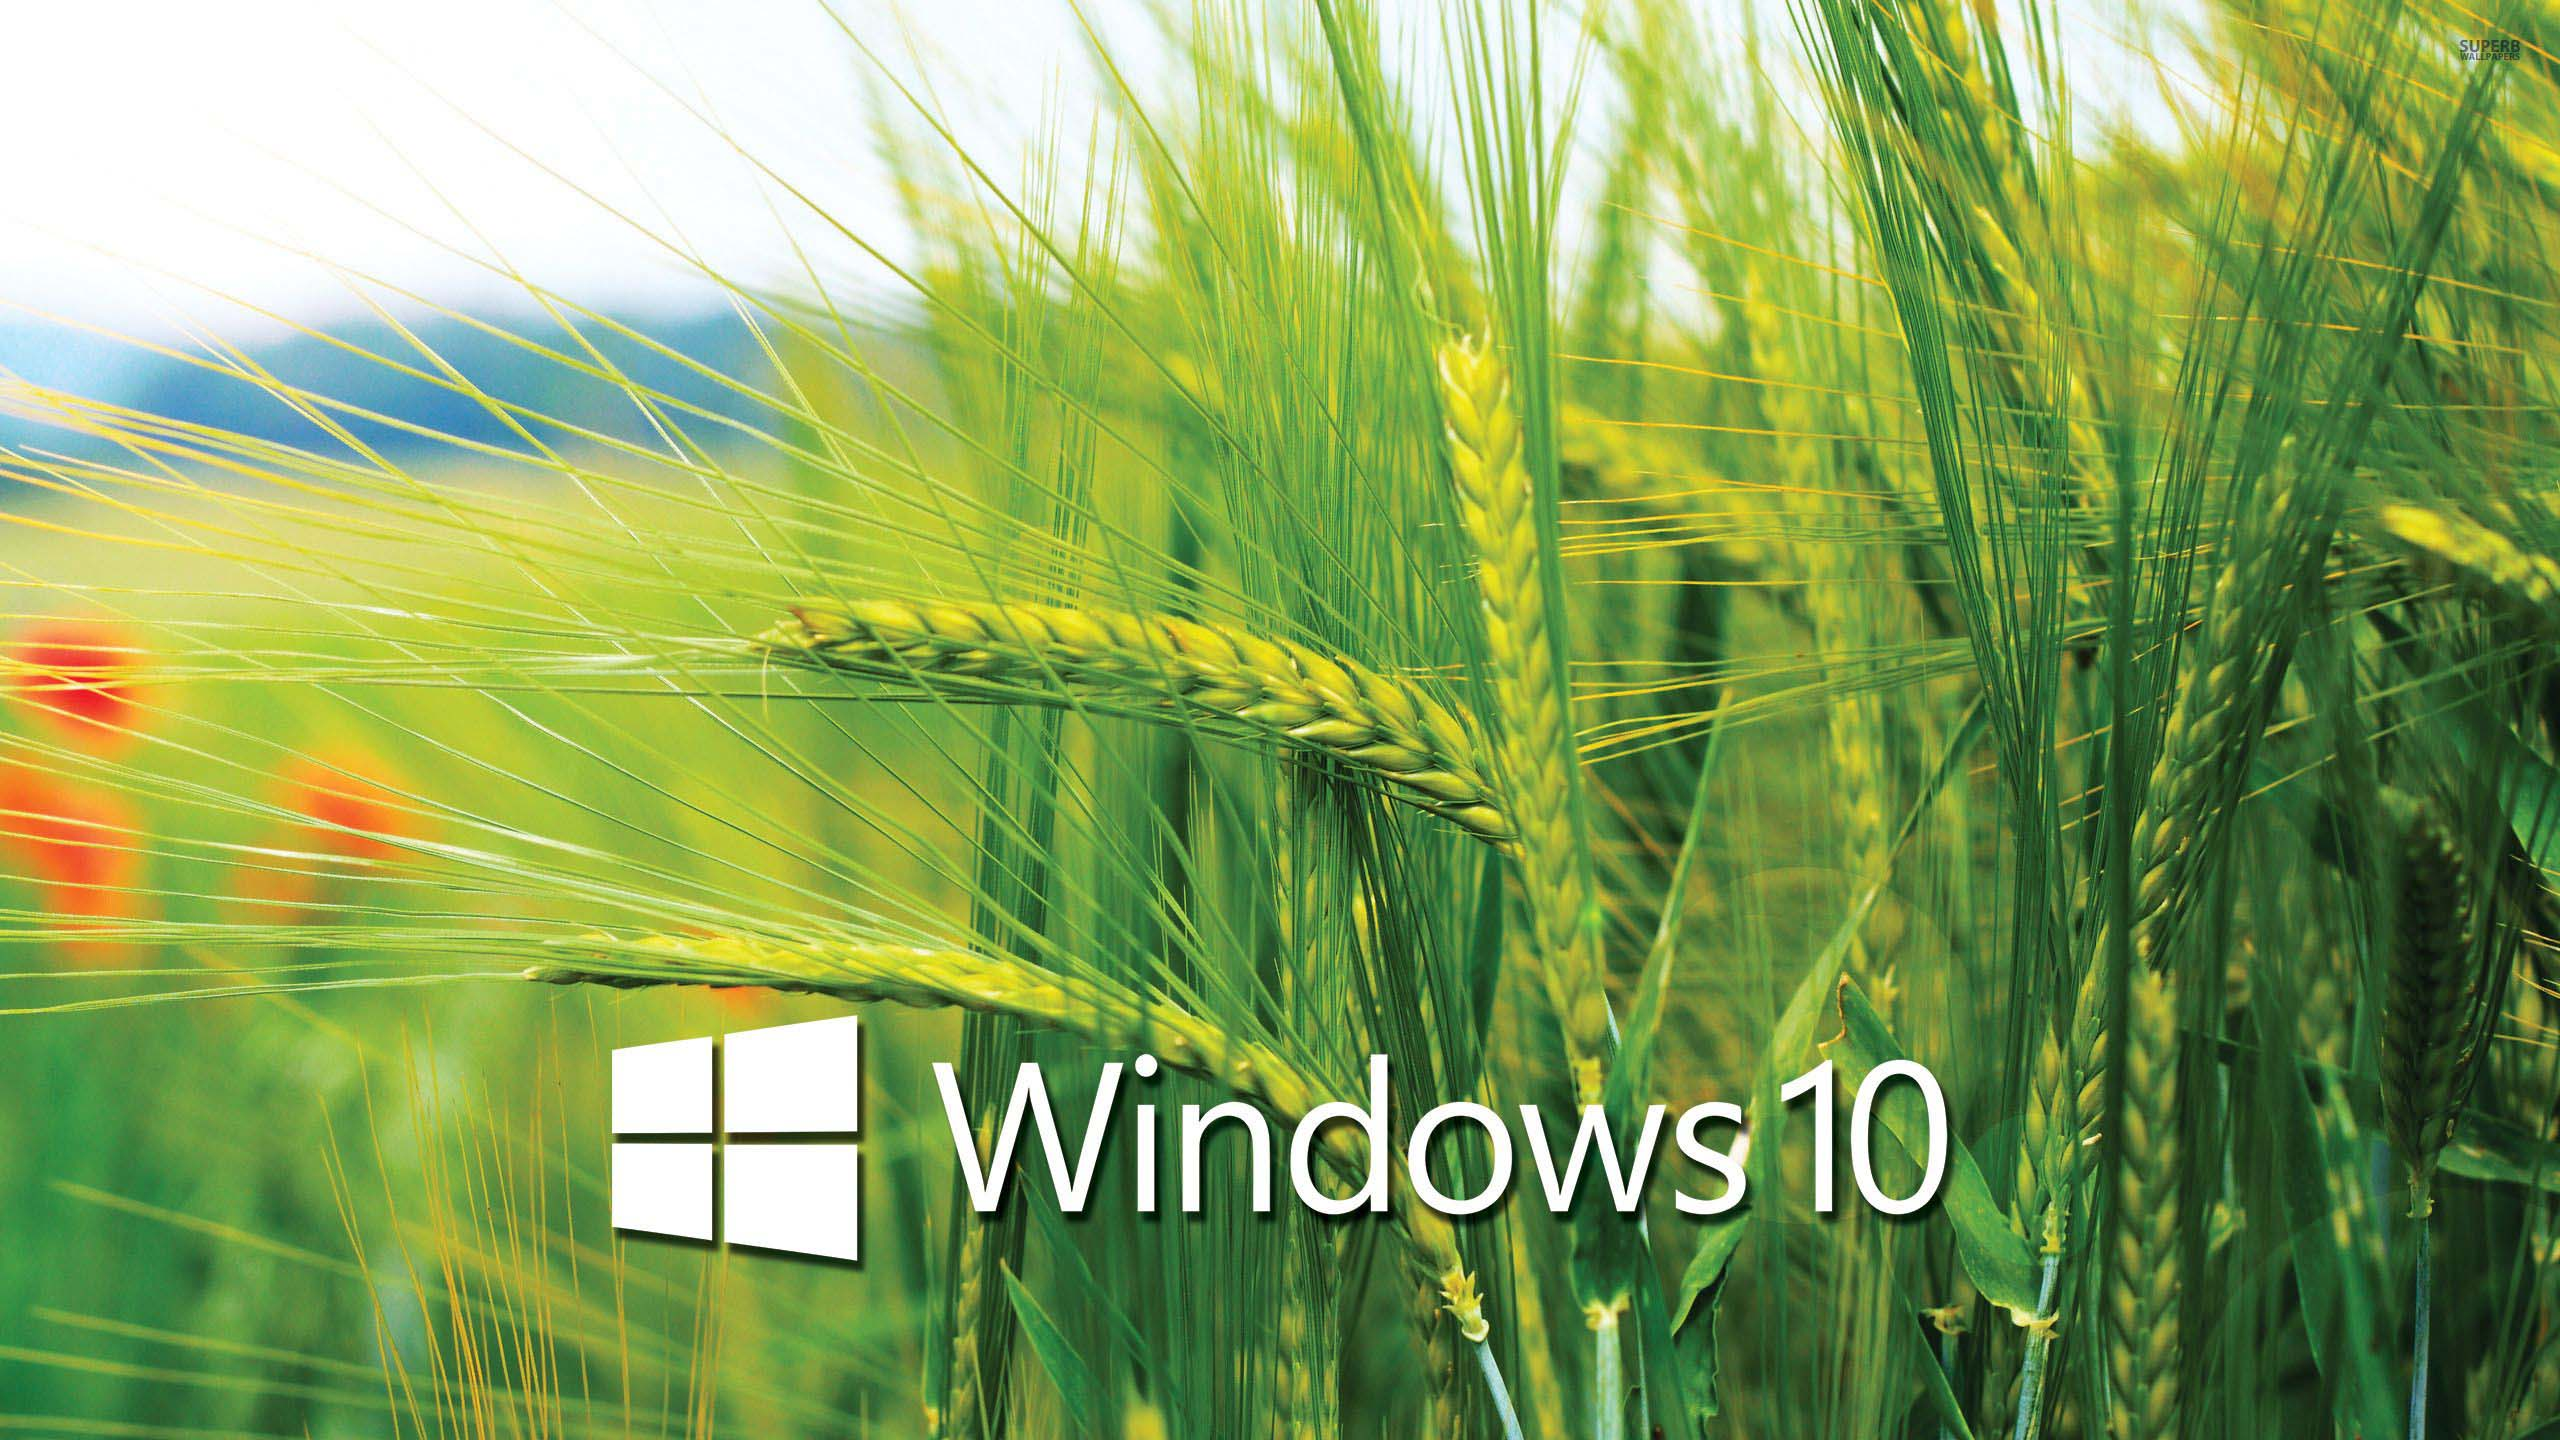 Windows 10 wallpaper for desktop